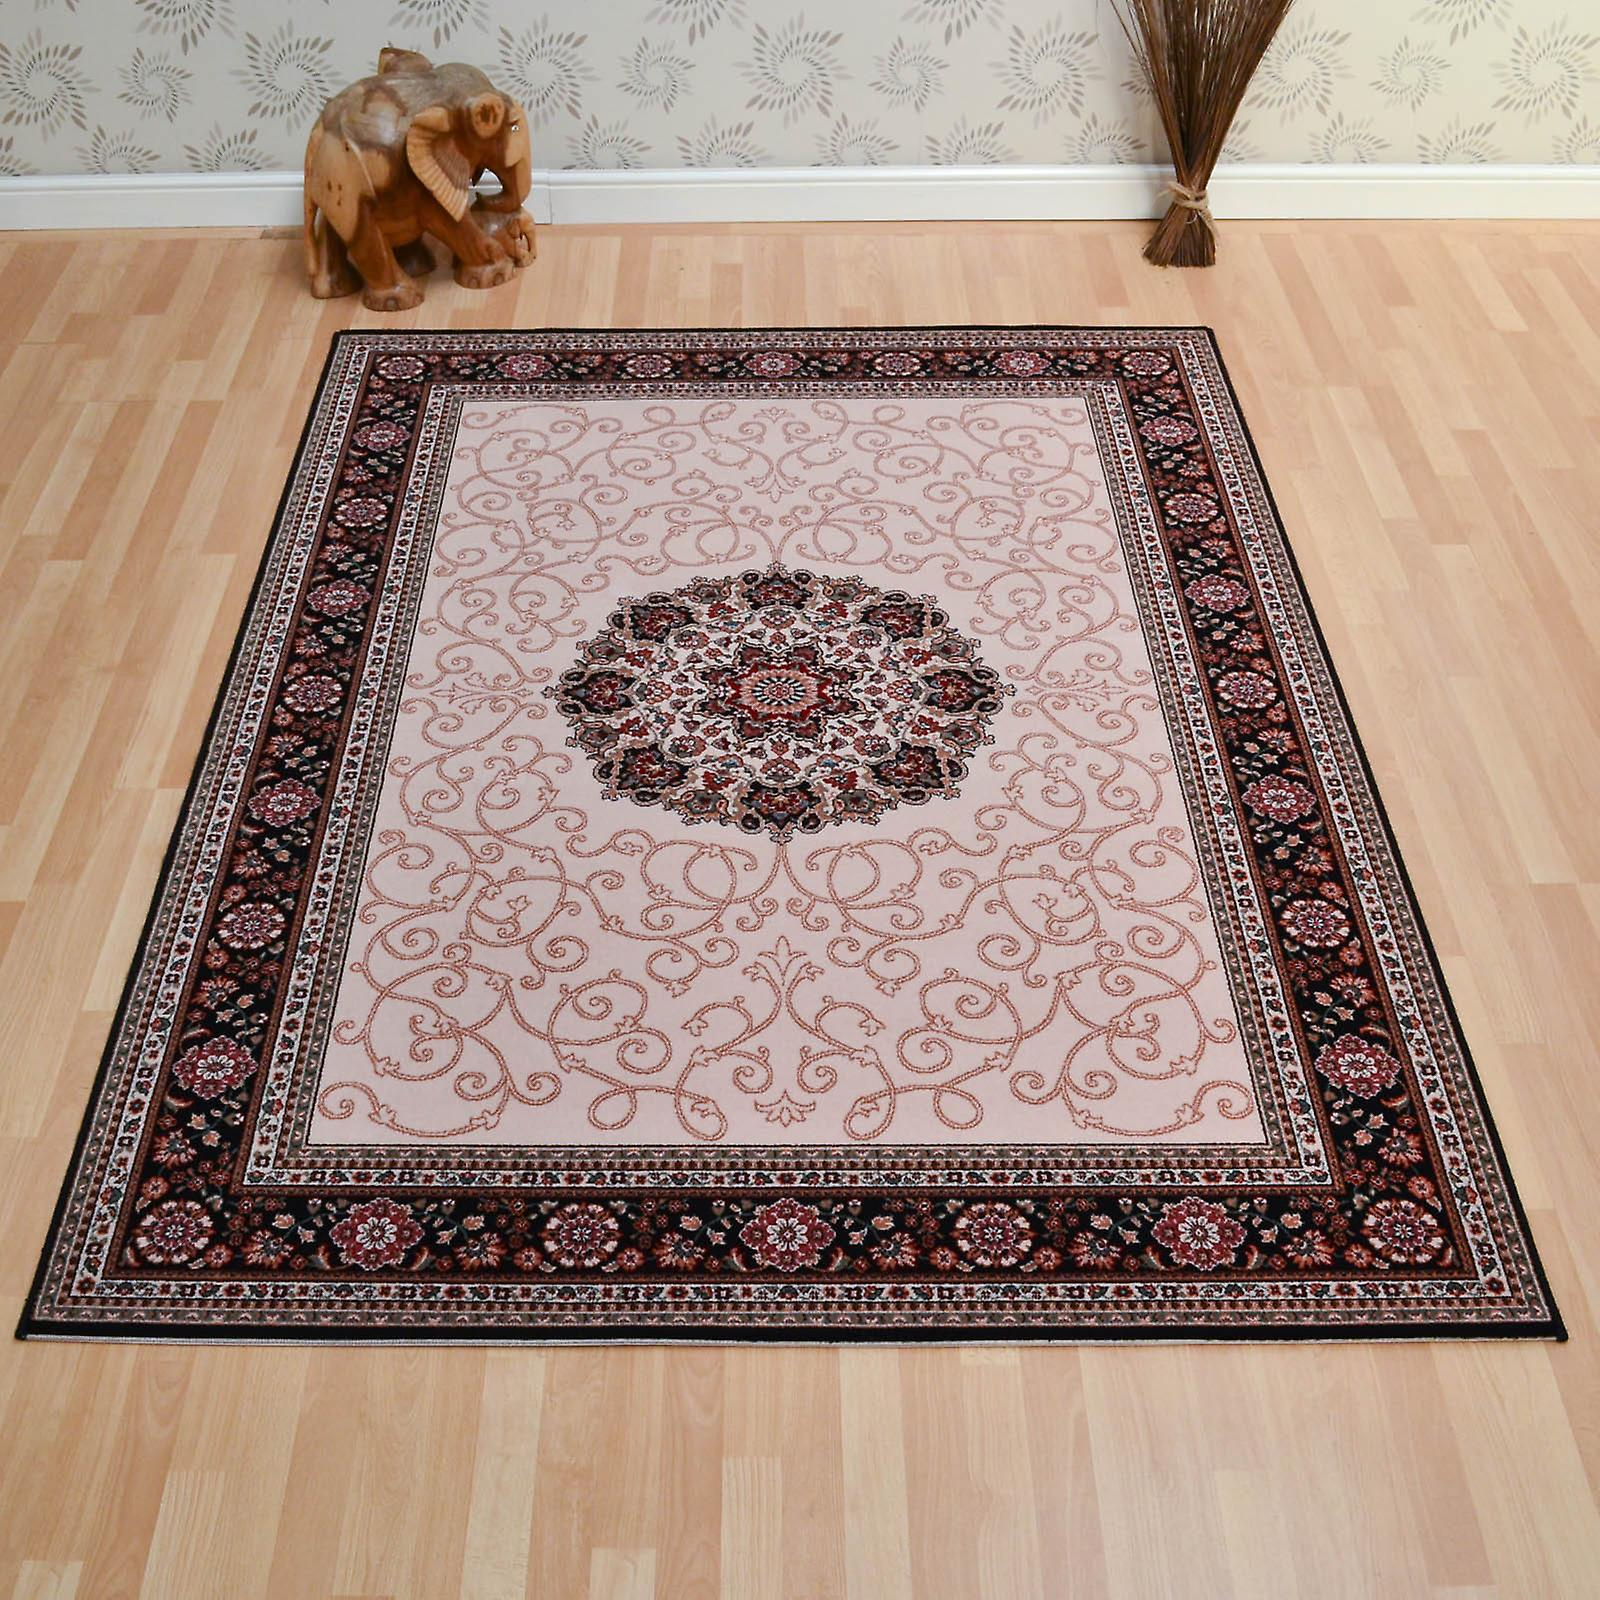 Lano Imperial Rugs 1954 687 In Beige And Navy